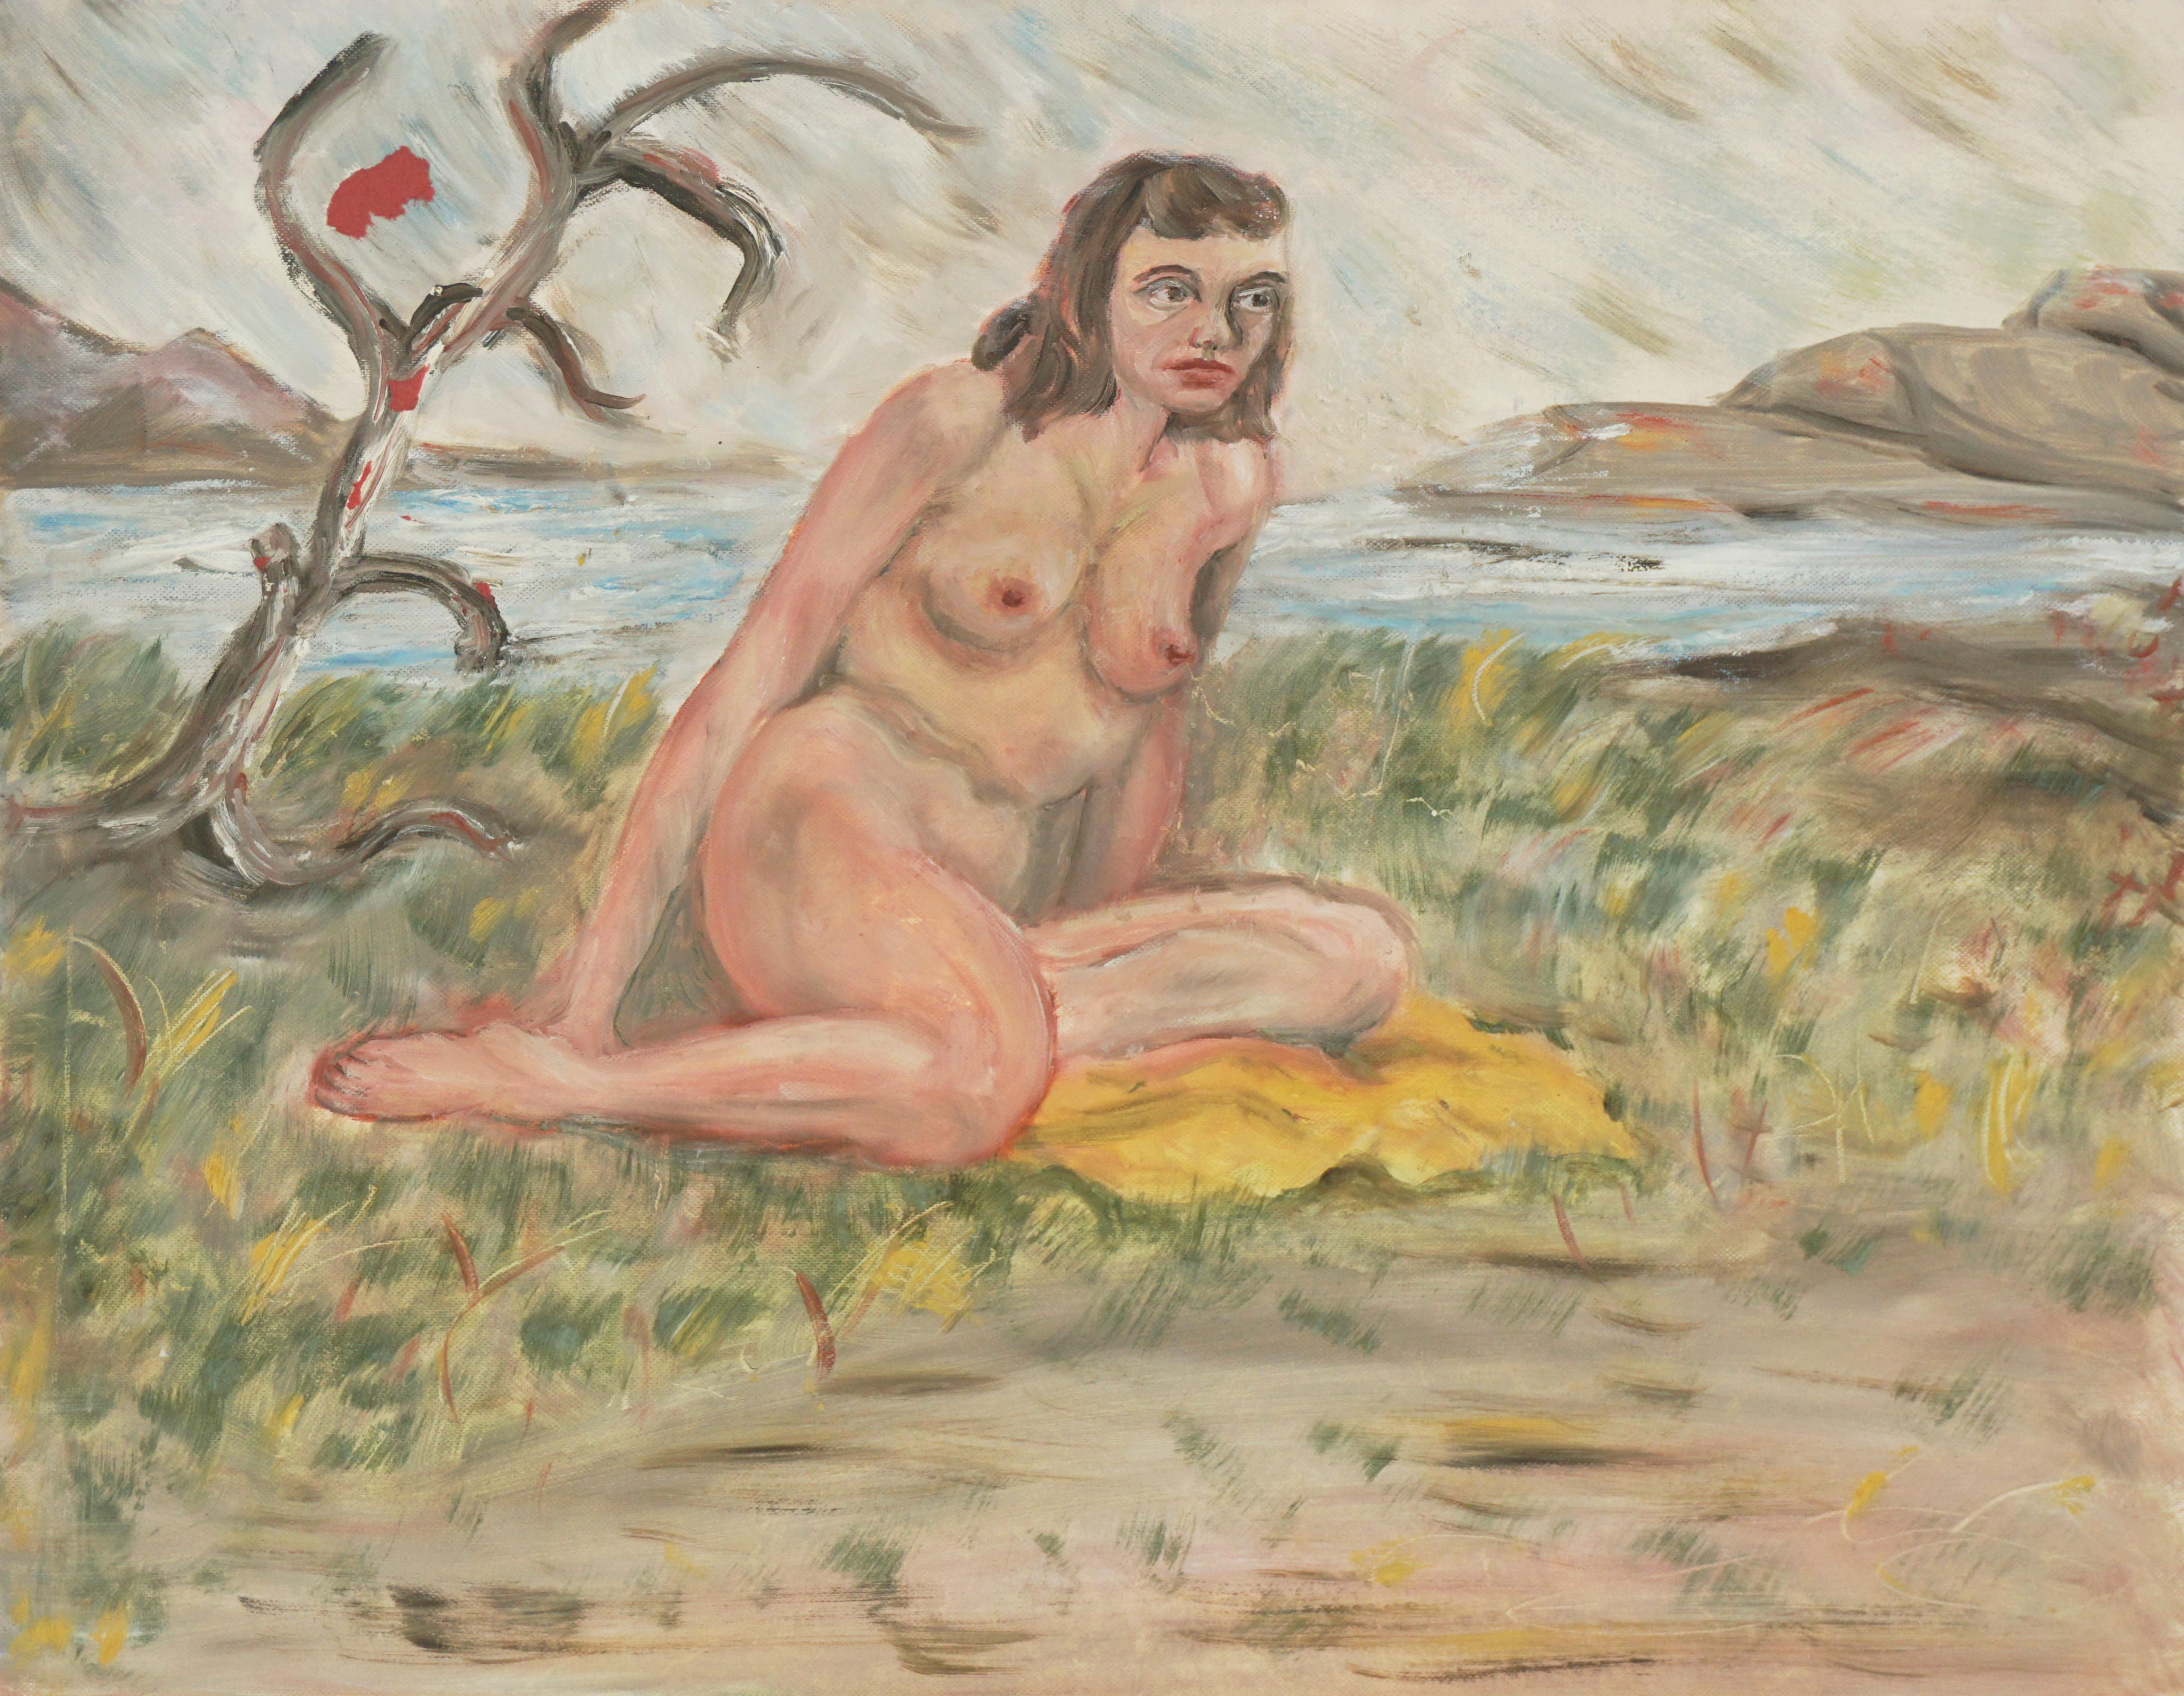 Brunette Nude Study at the Beach